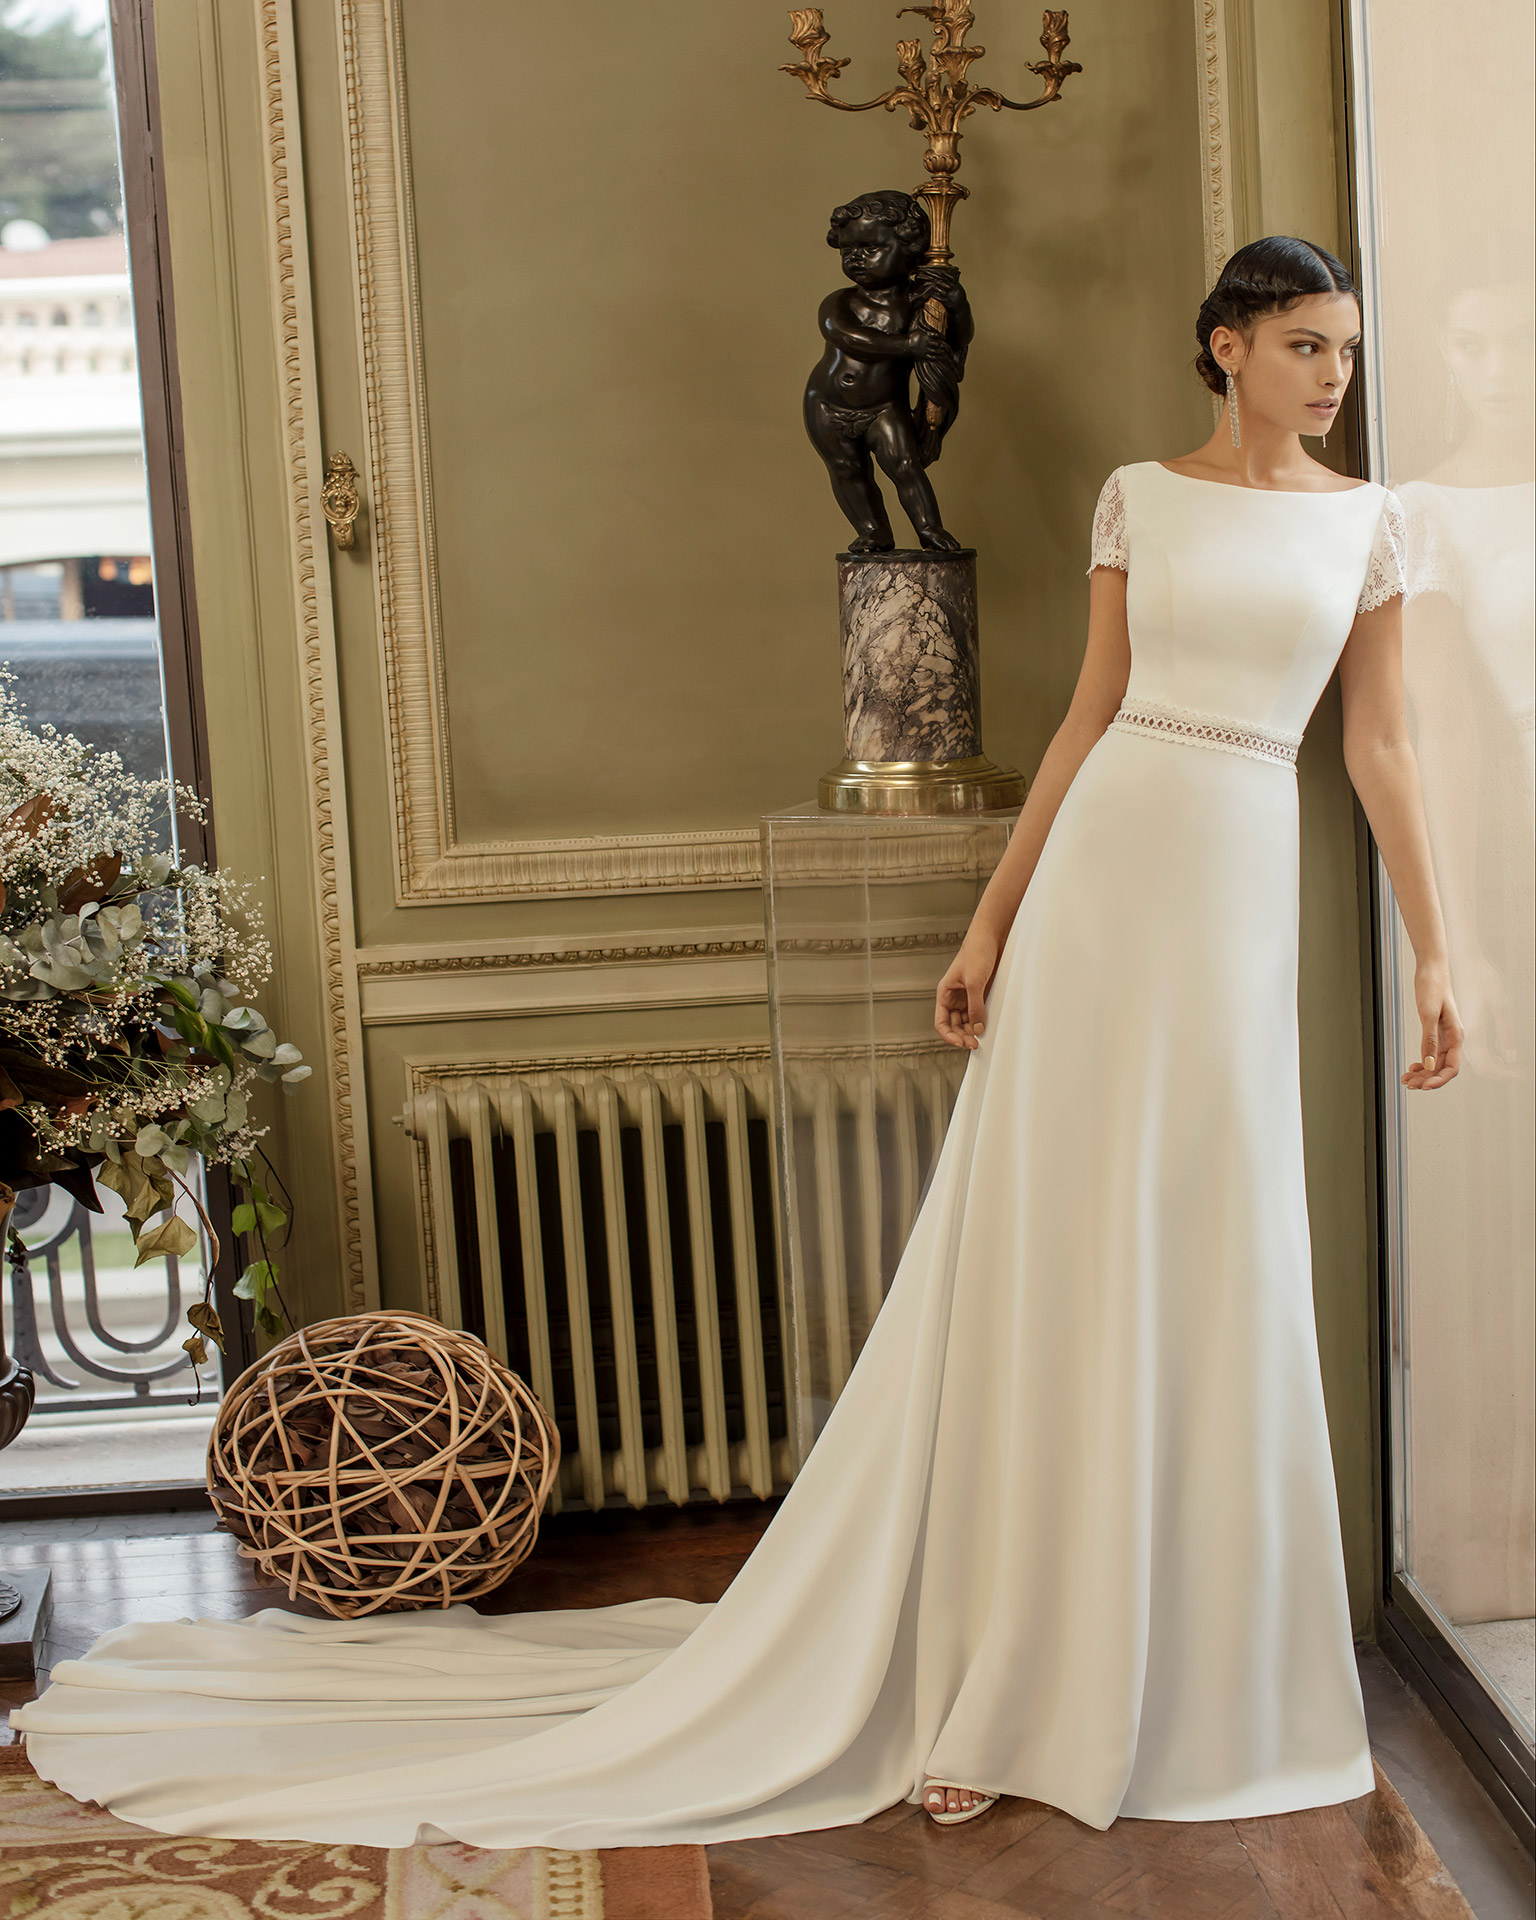 Elegant crepe wedding dress with body-shaping lining and lace with bateau neckline, low back and short sleeves. 2020 ALMANOVIA Collection.